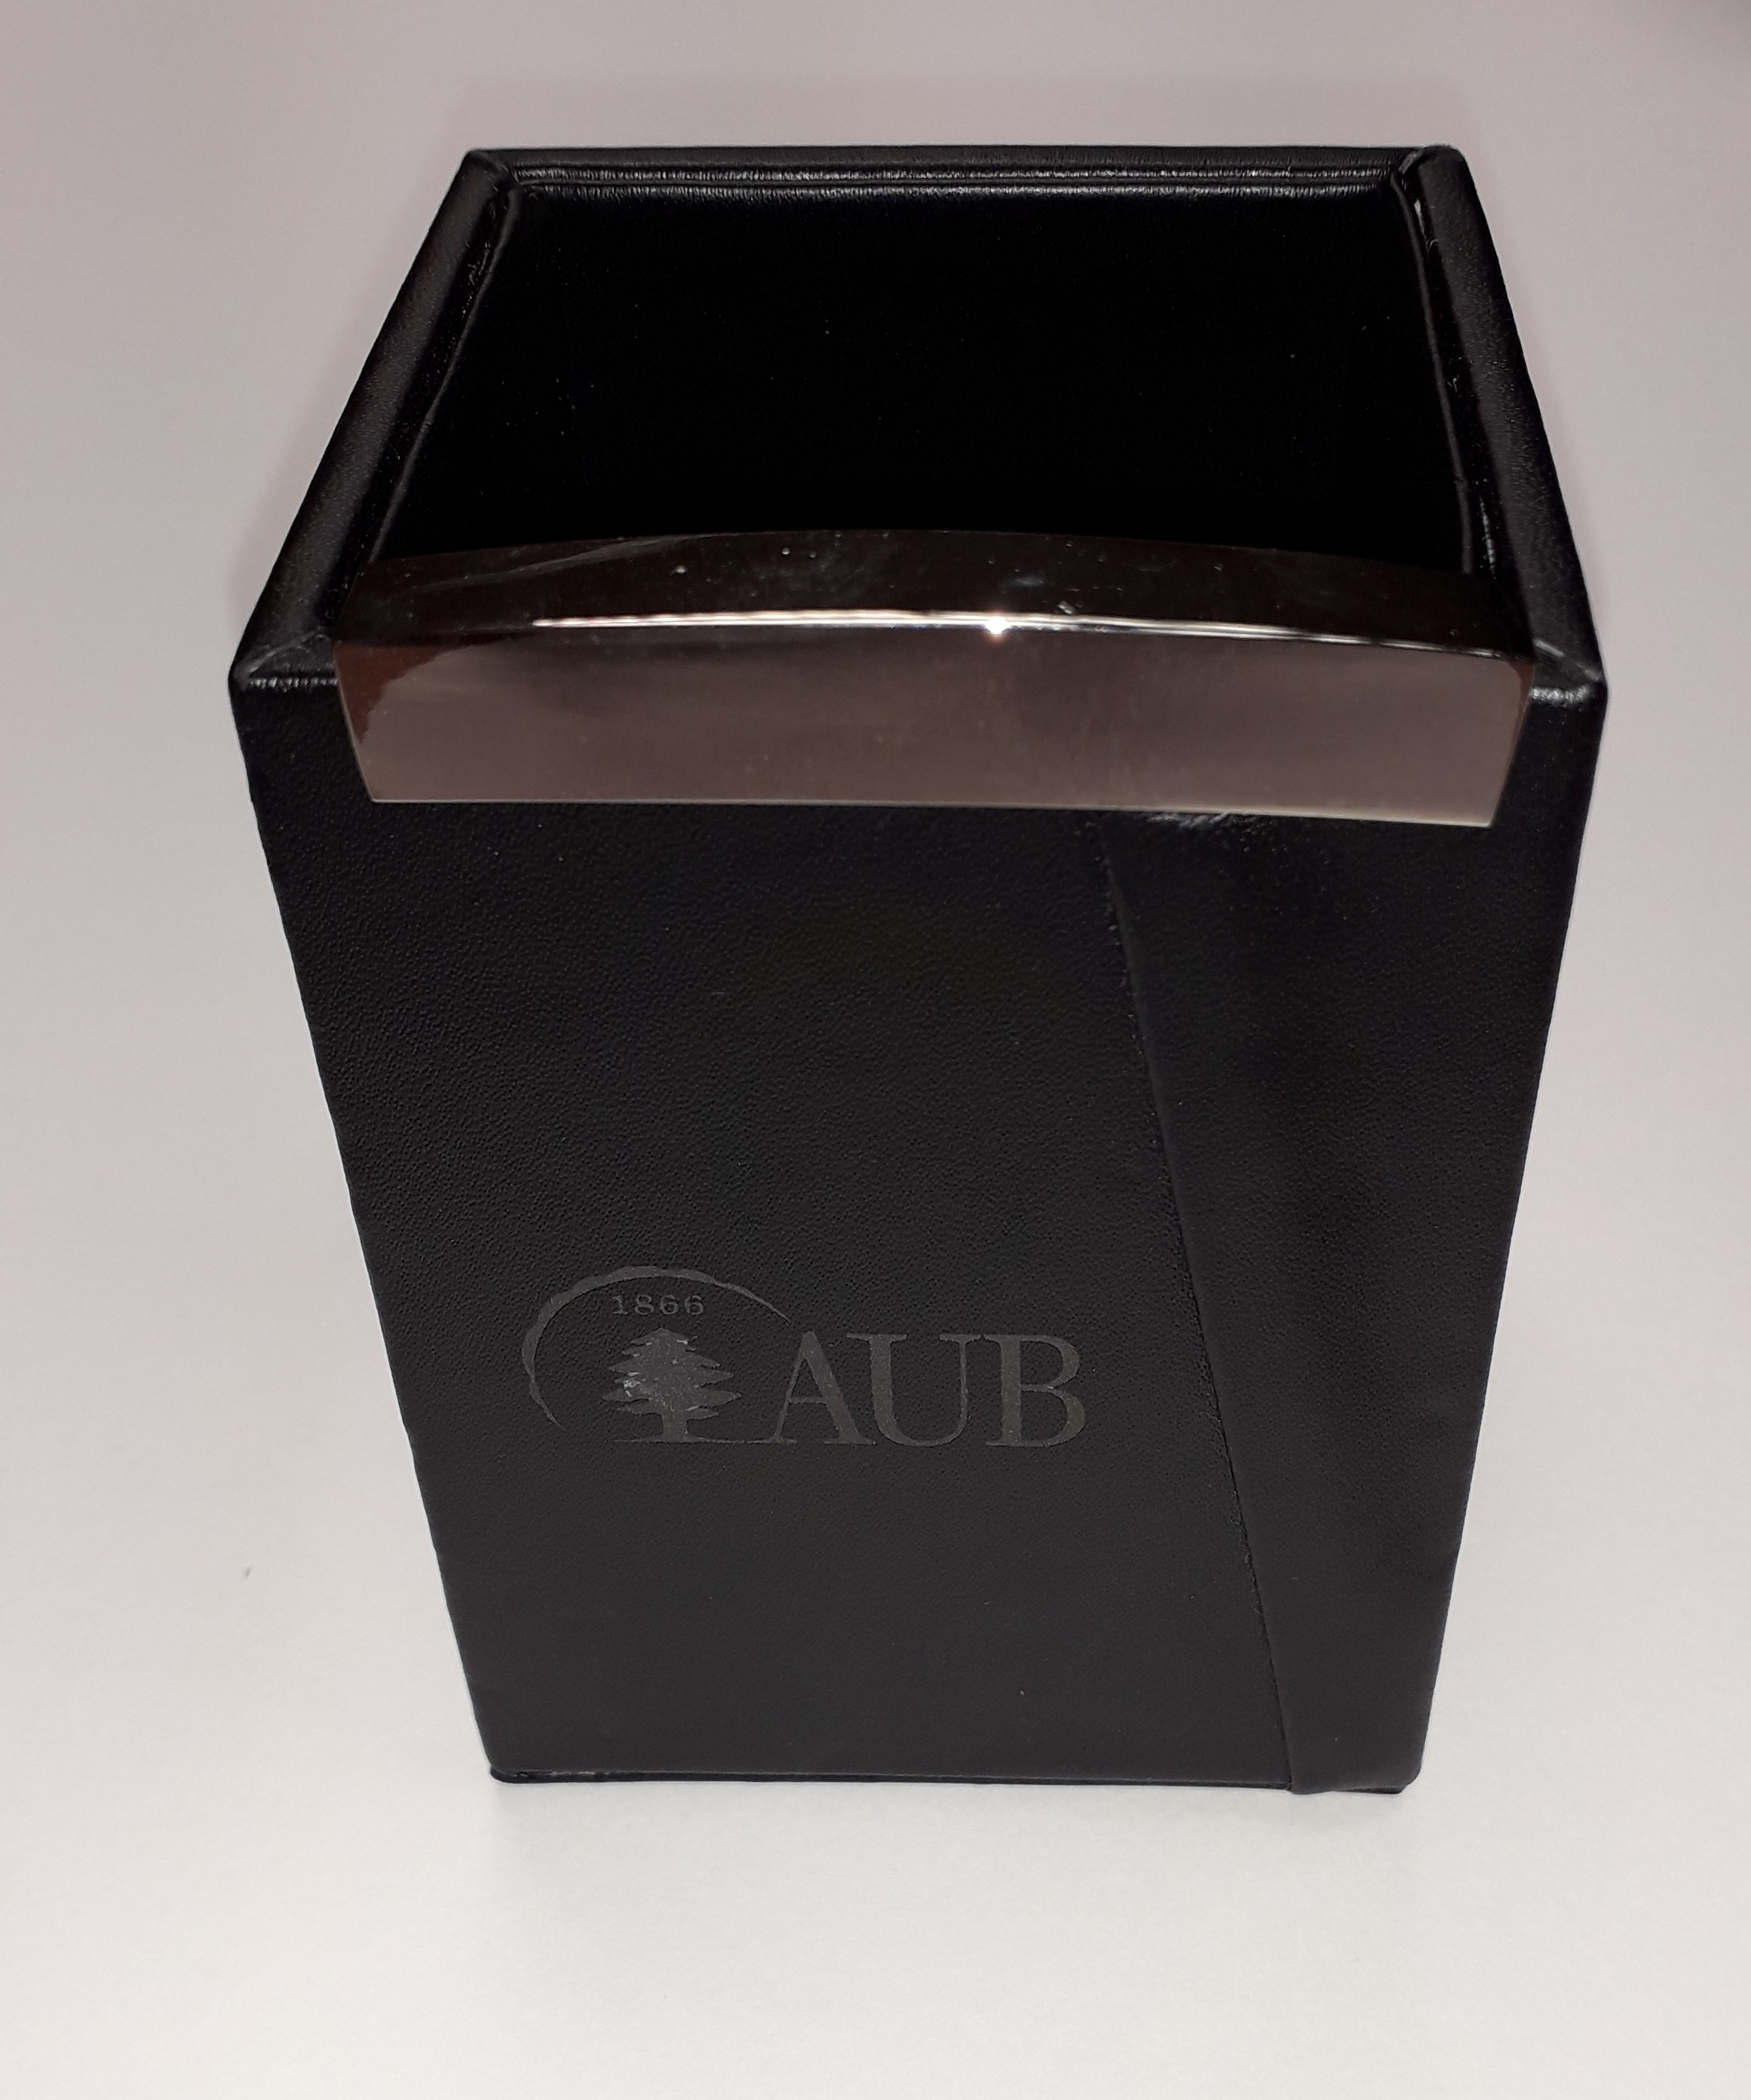 AUB Leather Pen Holder Hard Black